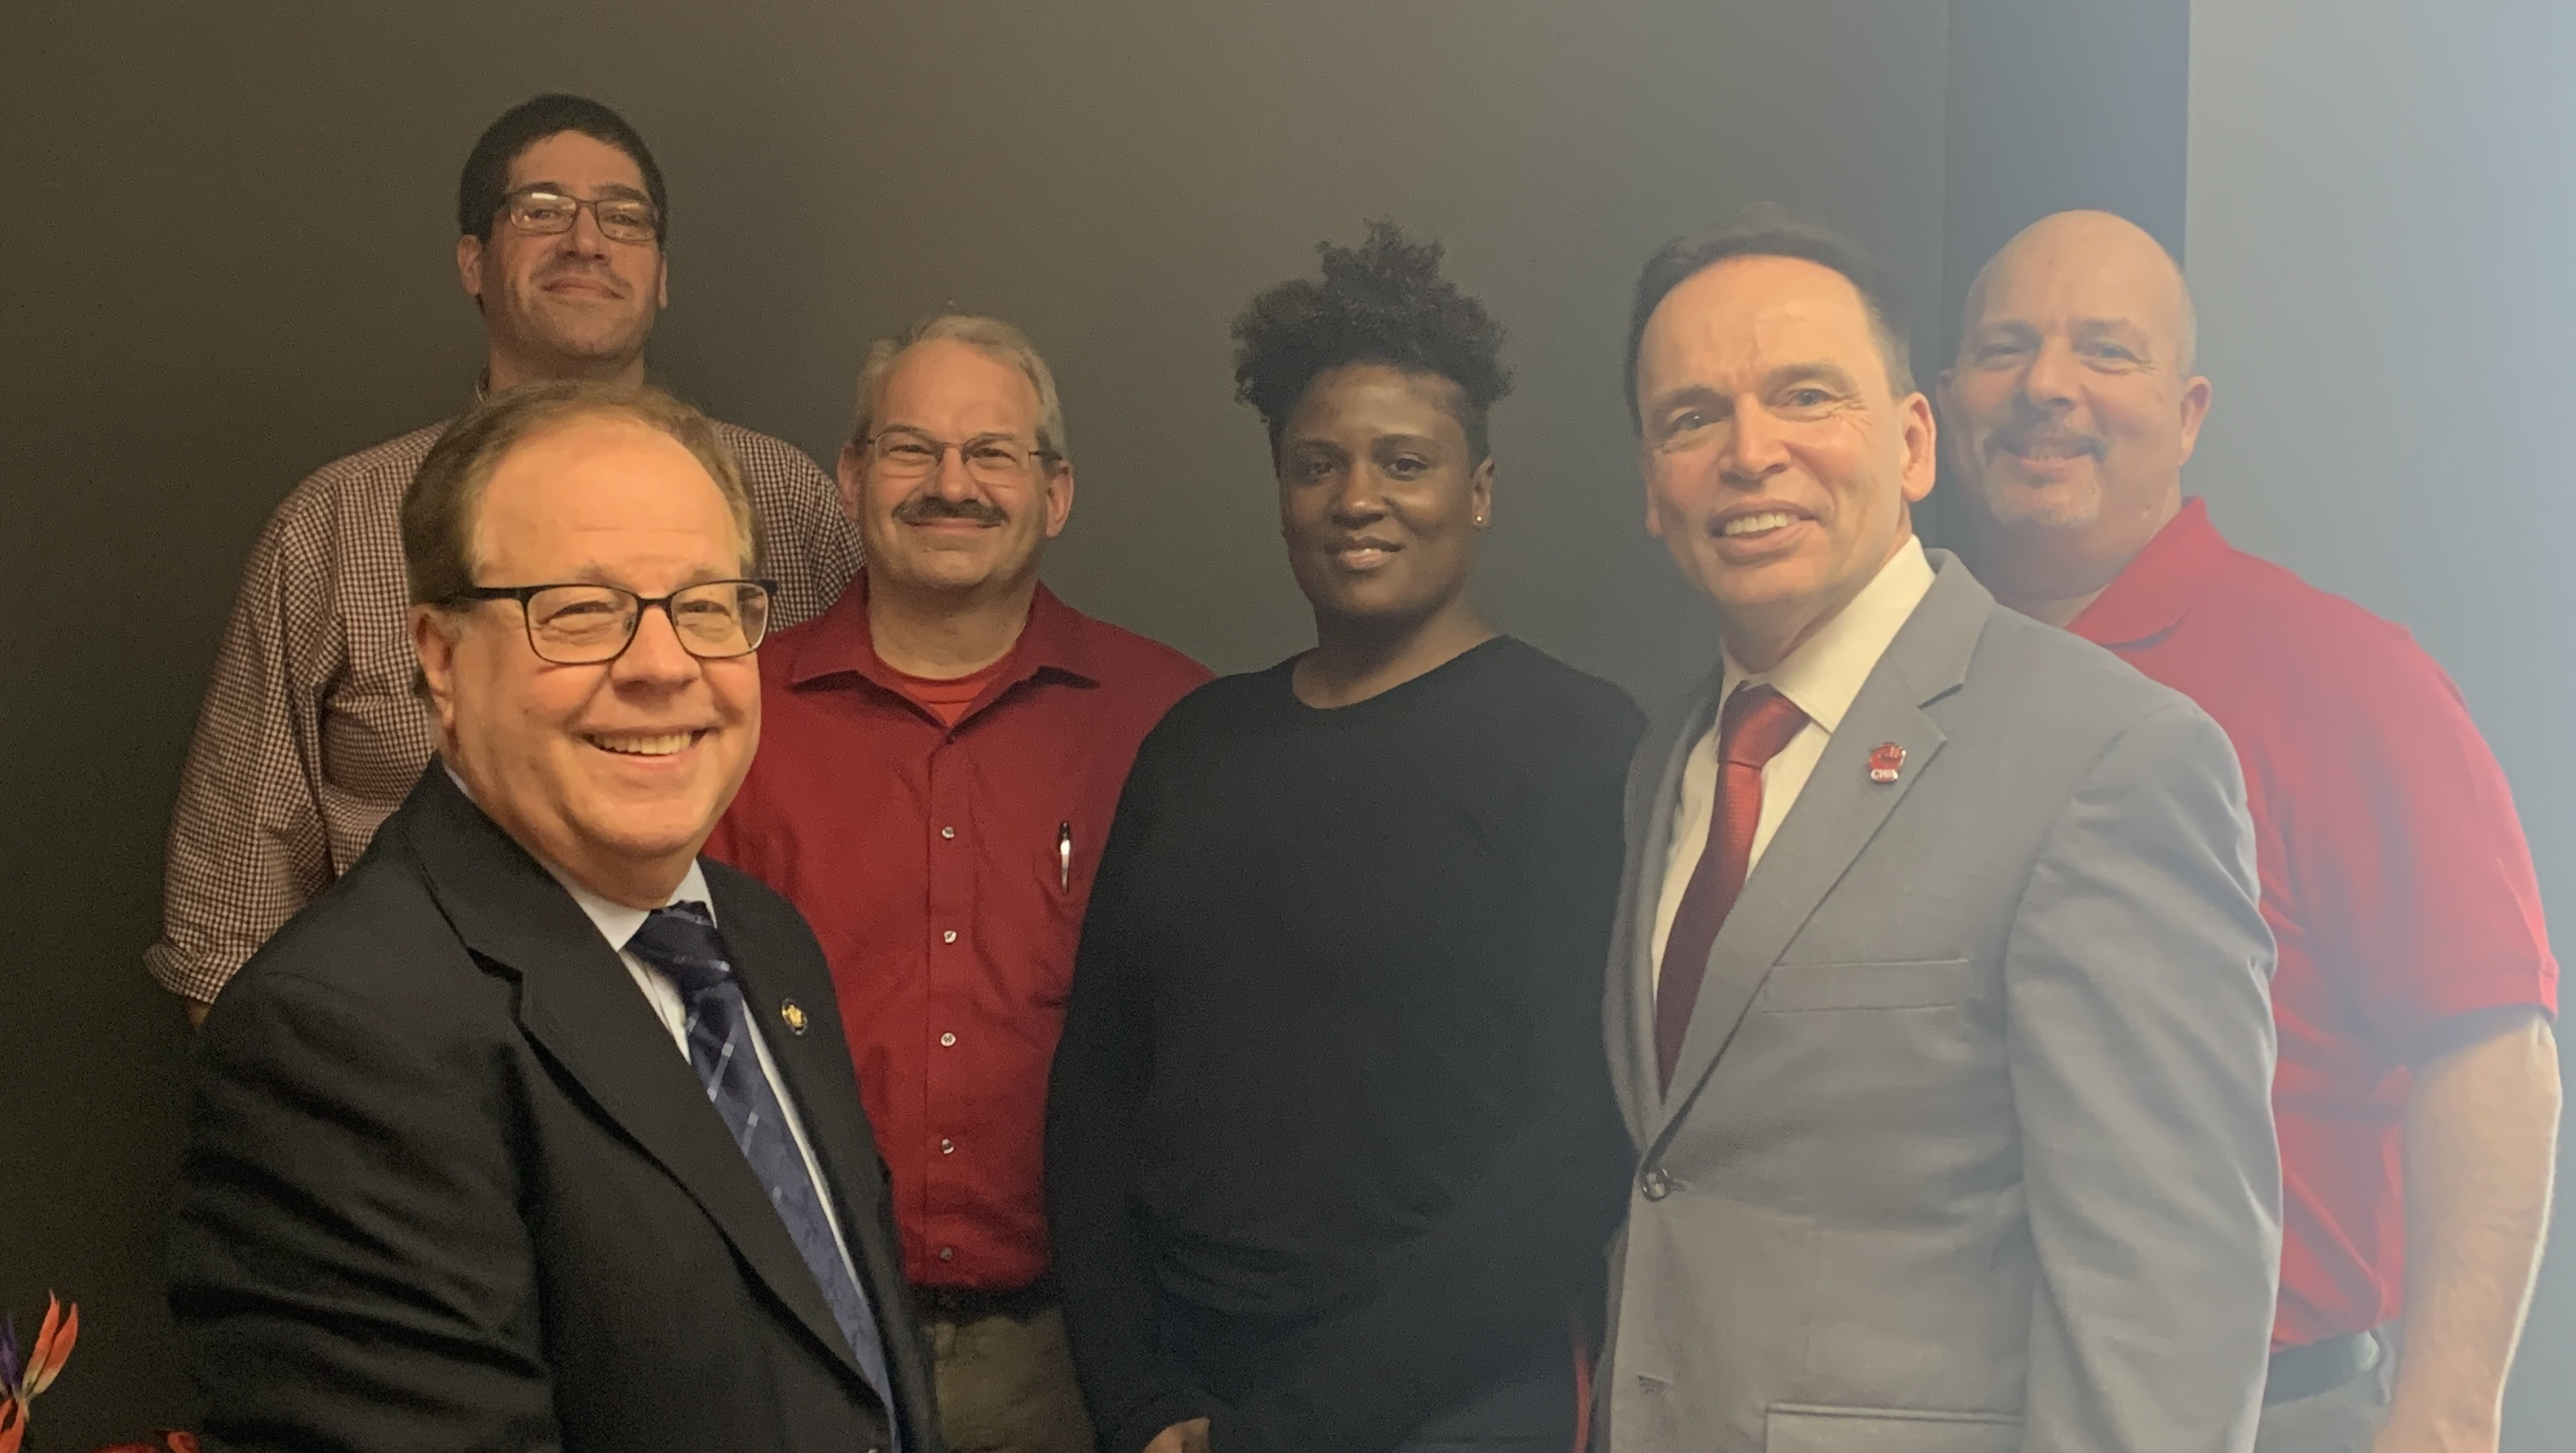 Tom Abinanti with Rob Pinto,  Dan Kozak, Natalia Campbell, John Caroppoli, and Joseph Mayhew from the Communications Workers of America.